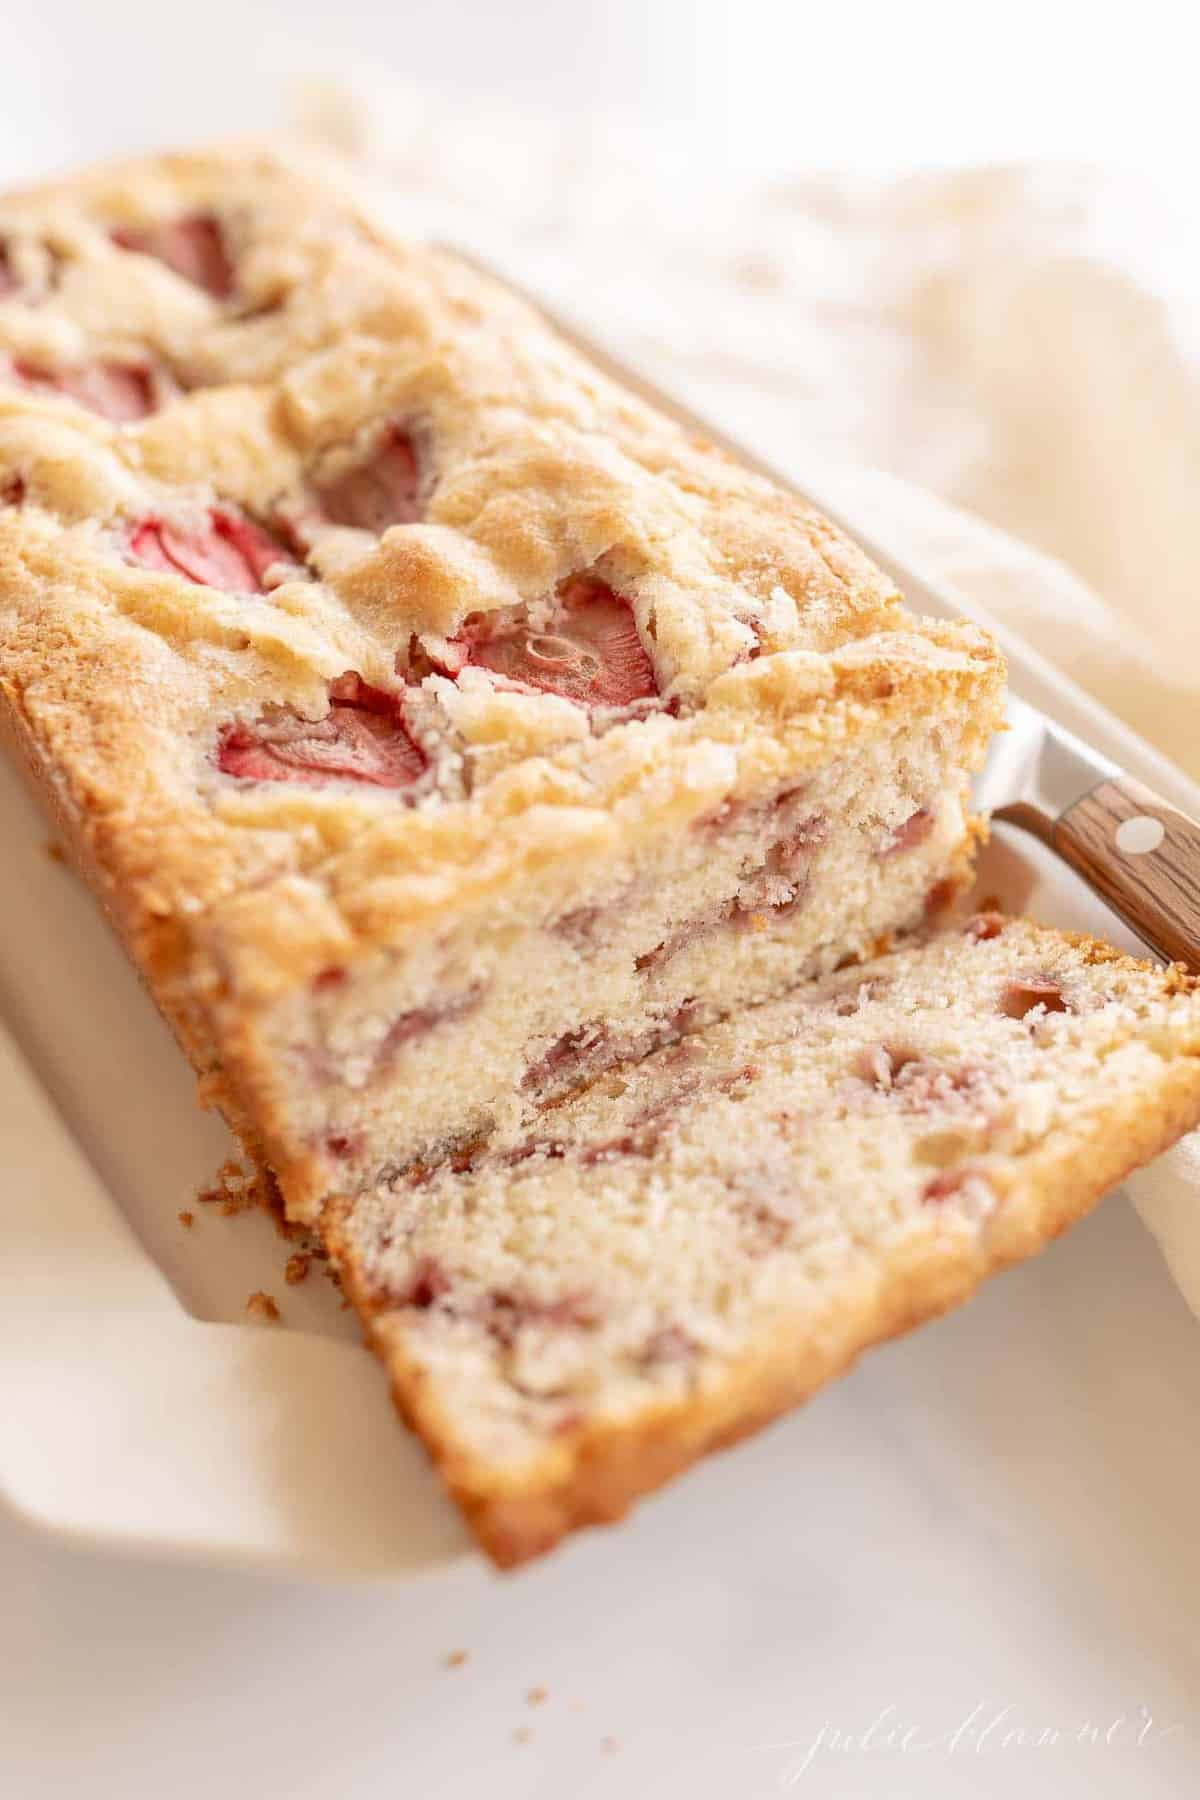 A loaf of strawberry bread, first slice cut off, knife to the side.